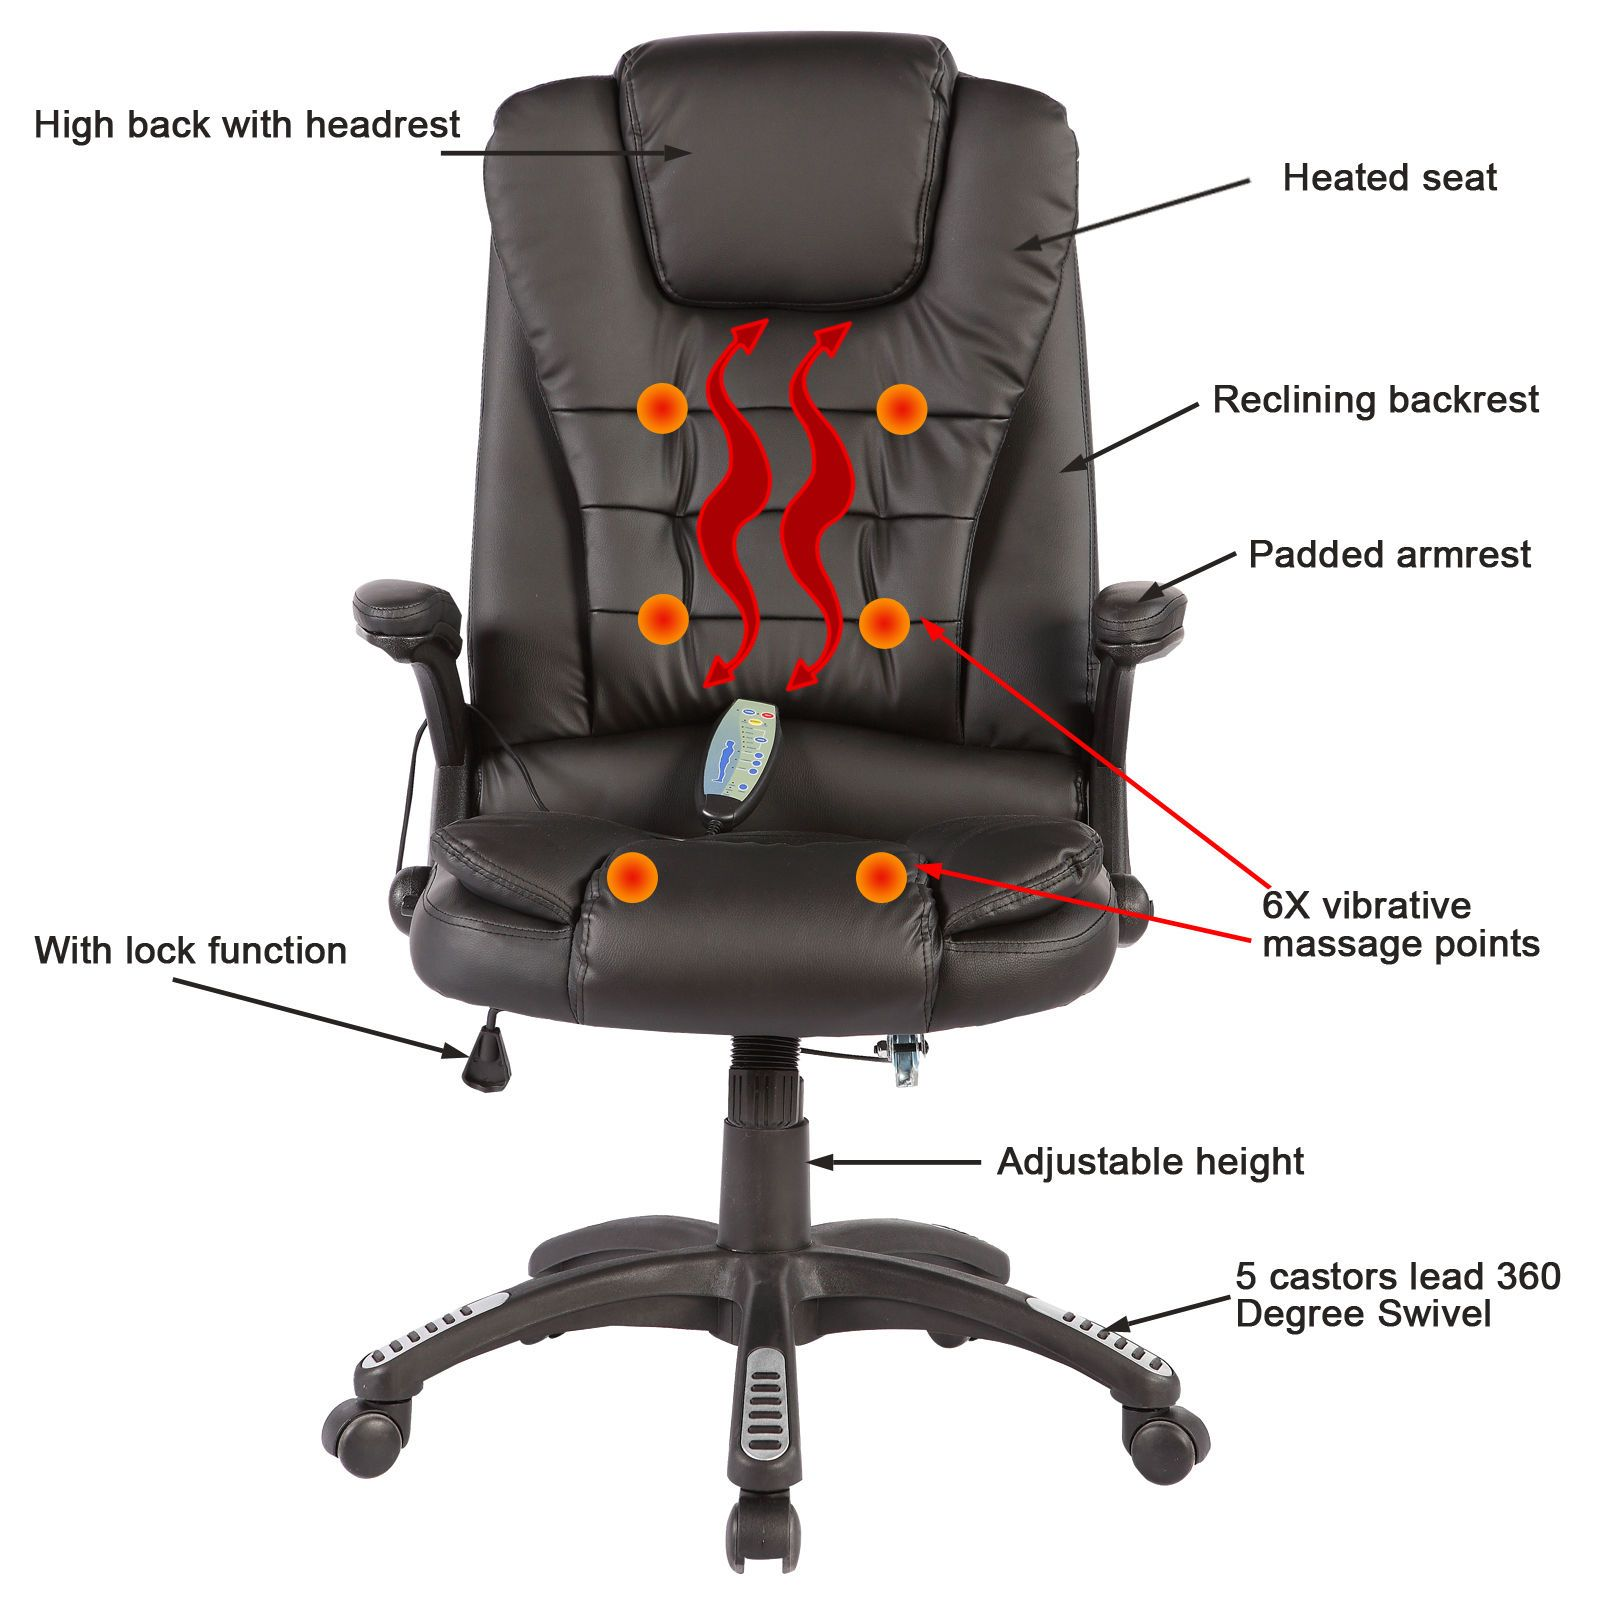 Heated Vibrating Mage Chair Executive Ergonomic Computer Office Desk Brown 709202326436 Ebay